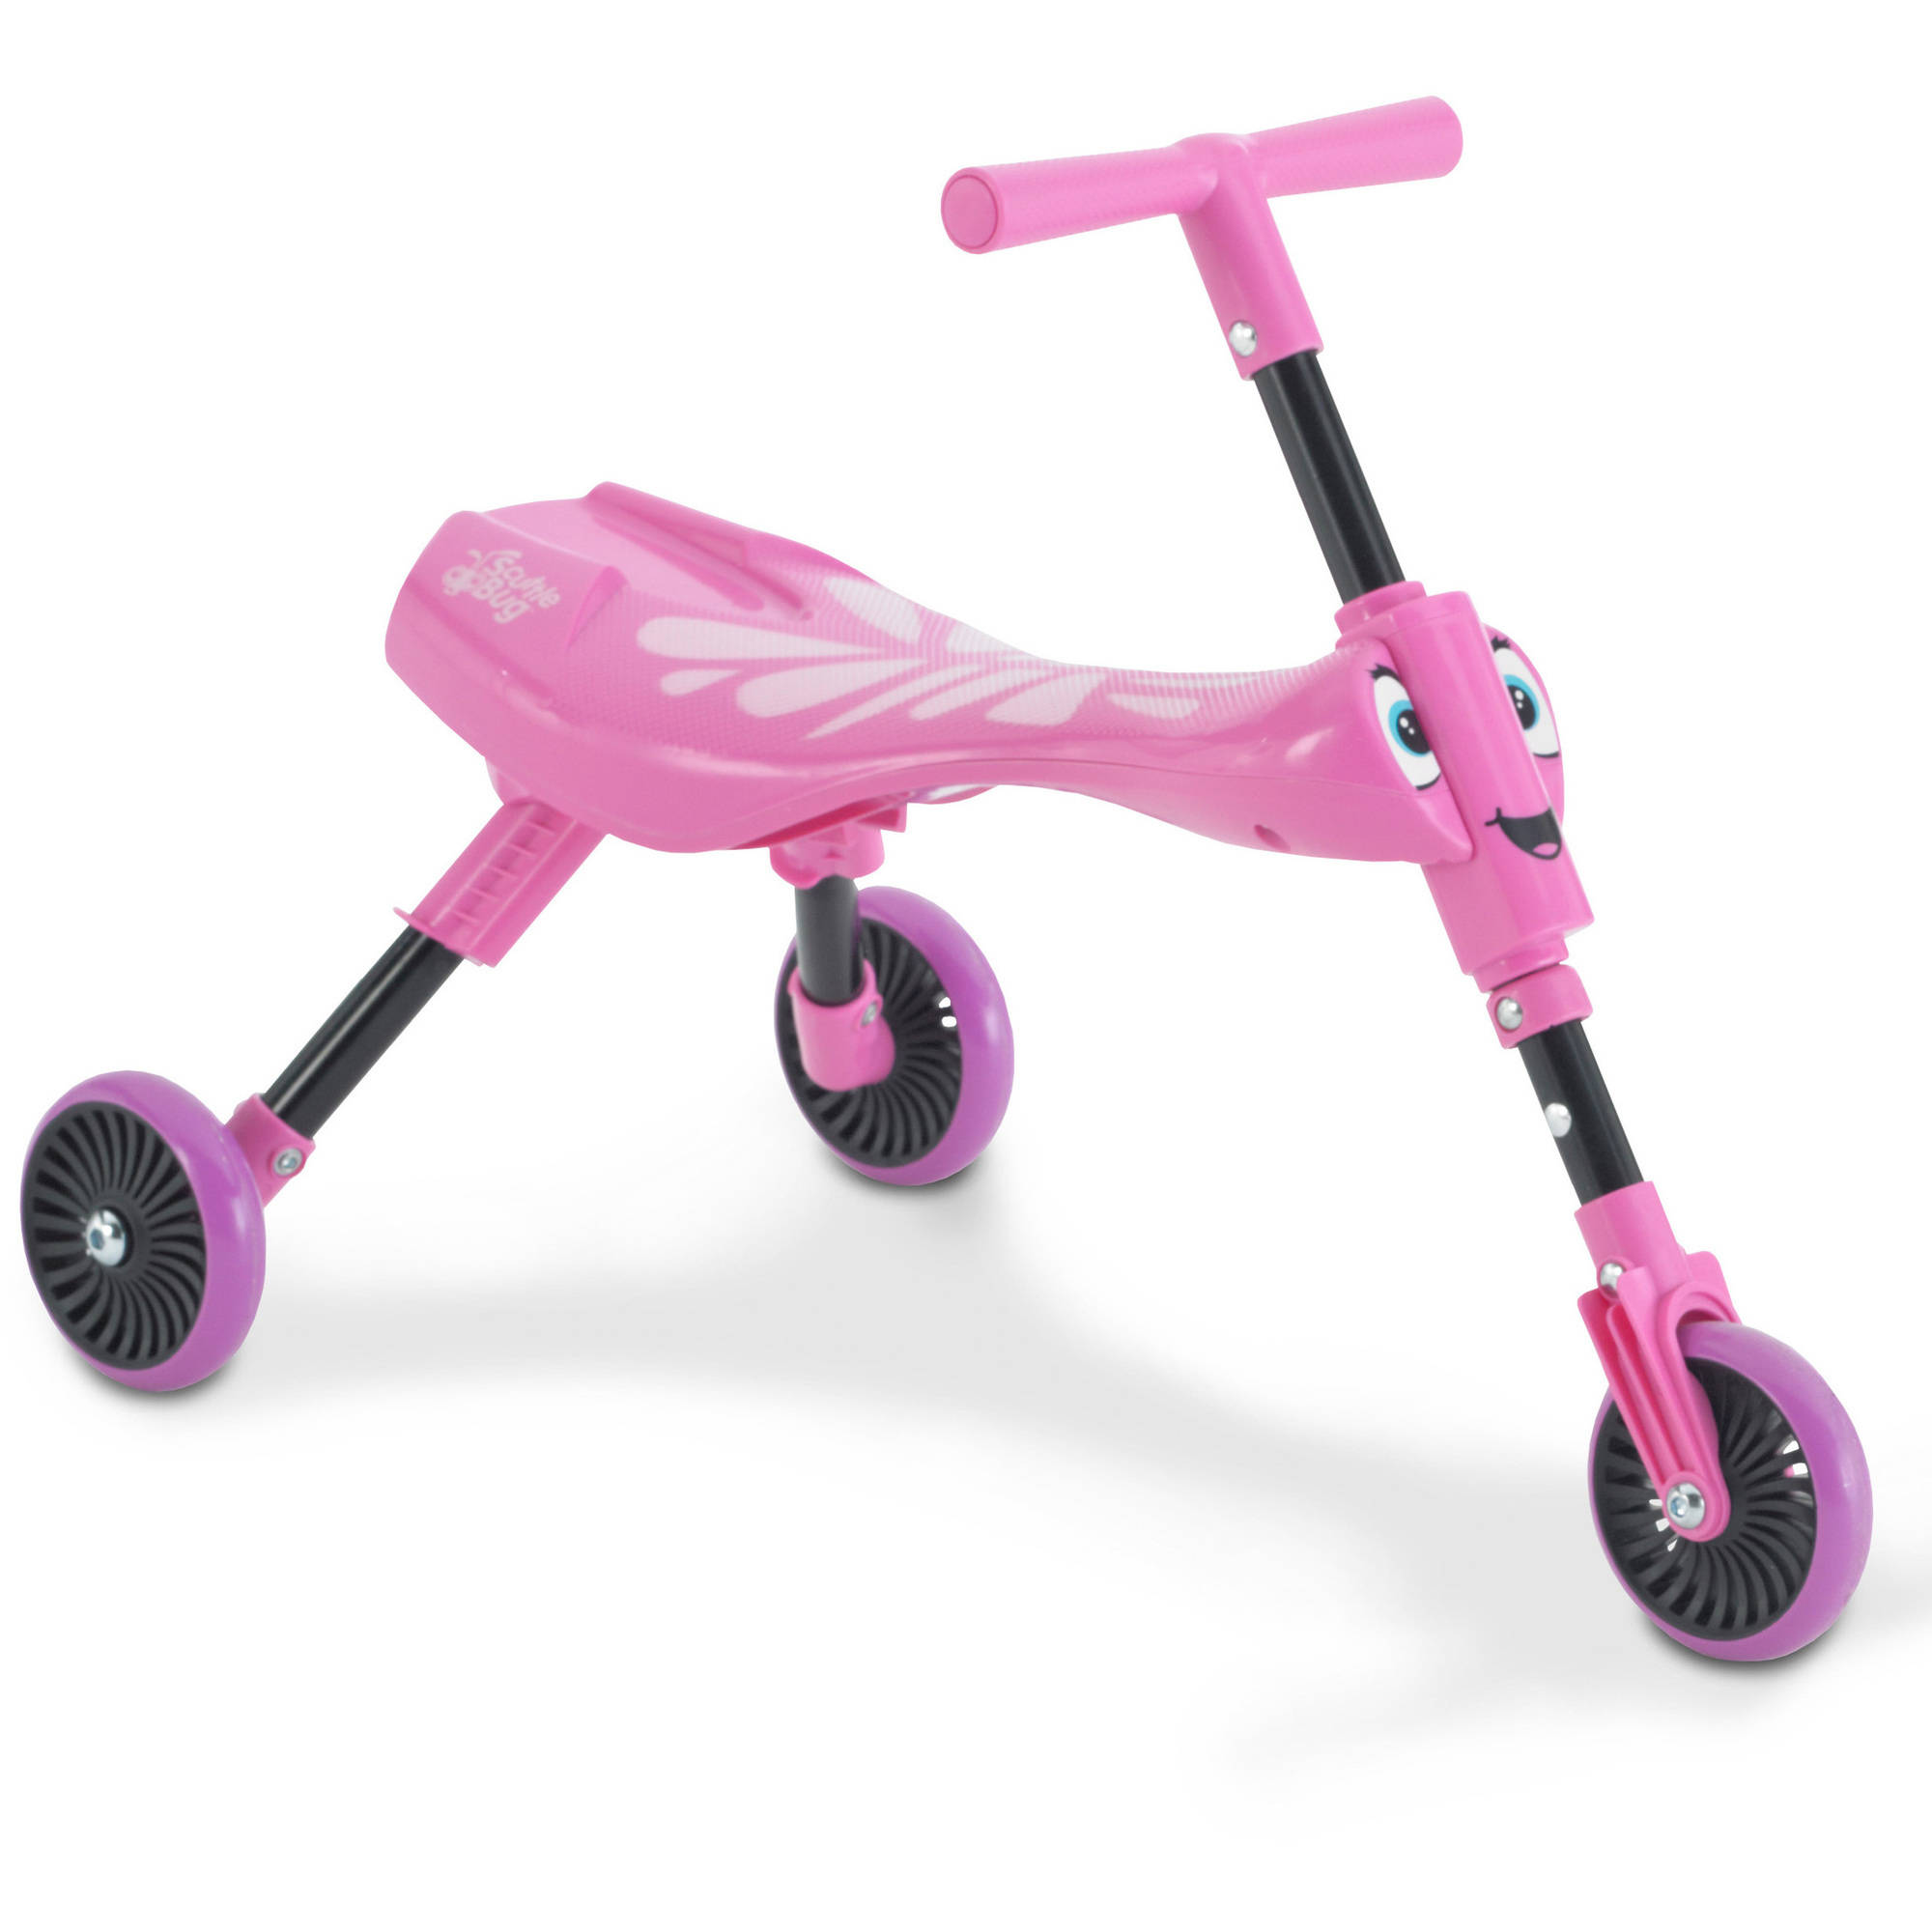 Mookie ScuttleBug Butterfly 3-Wheel Foldable Ride-On